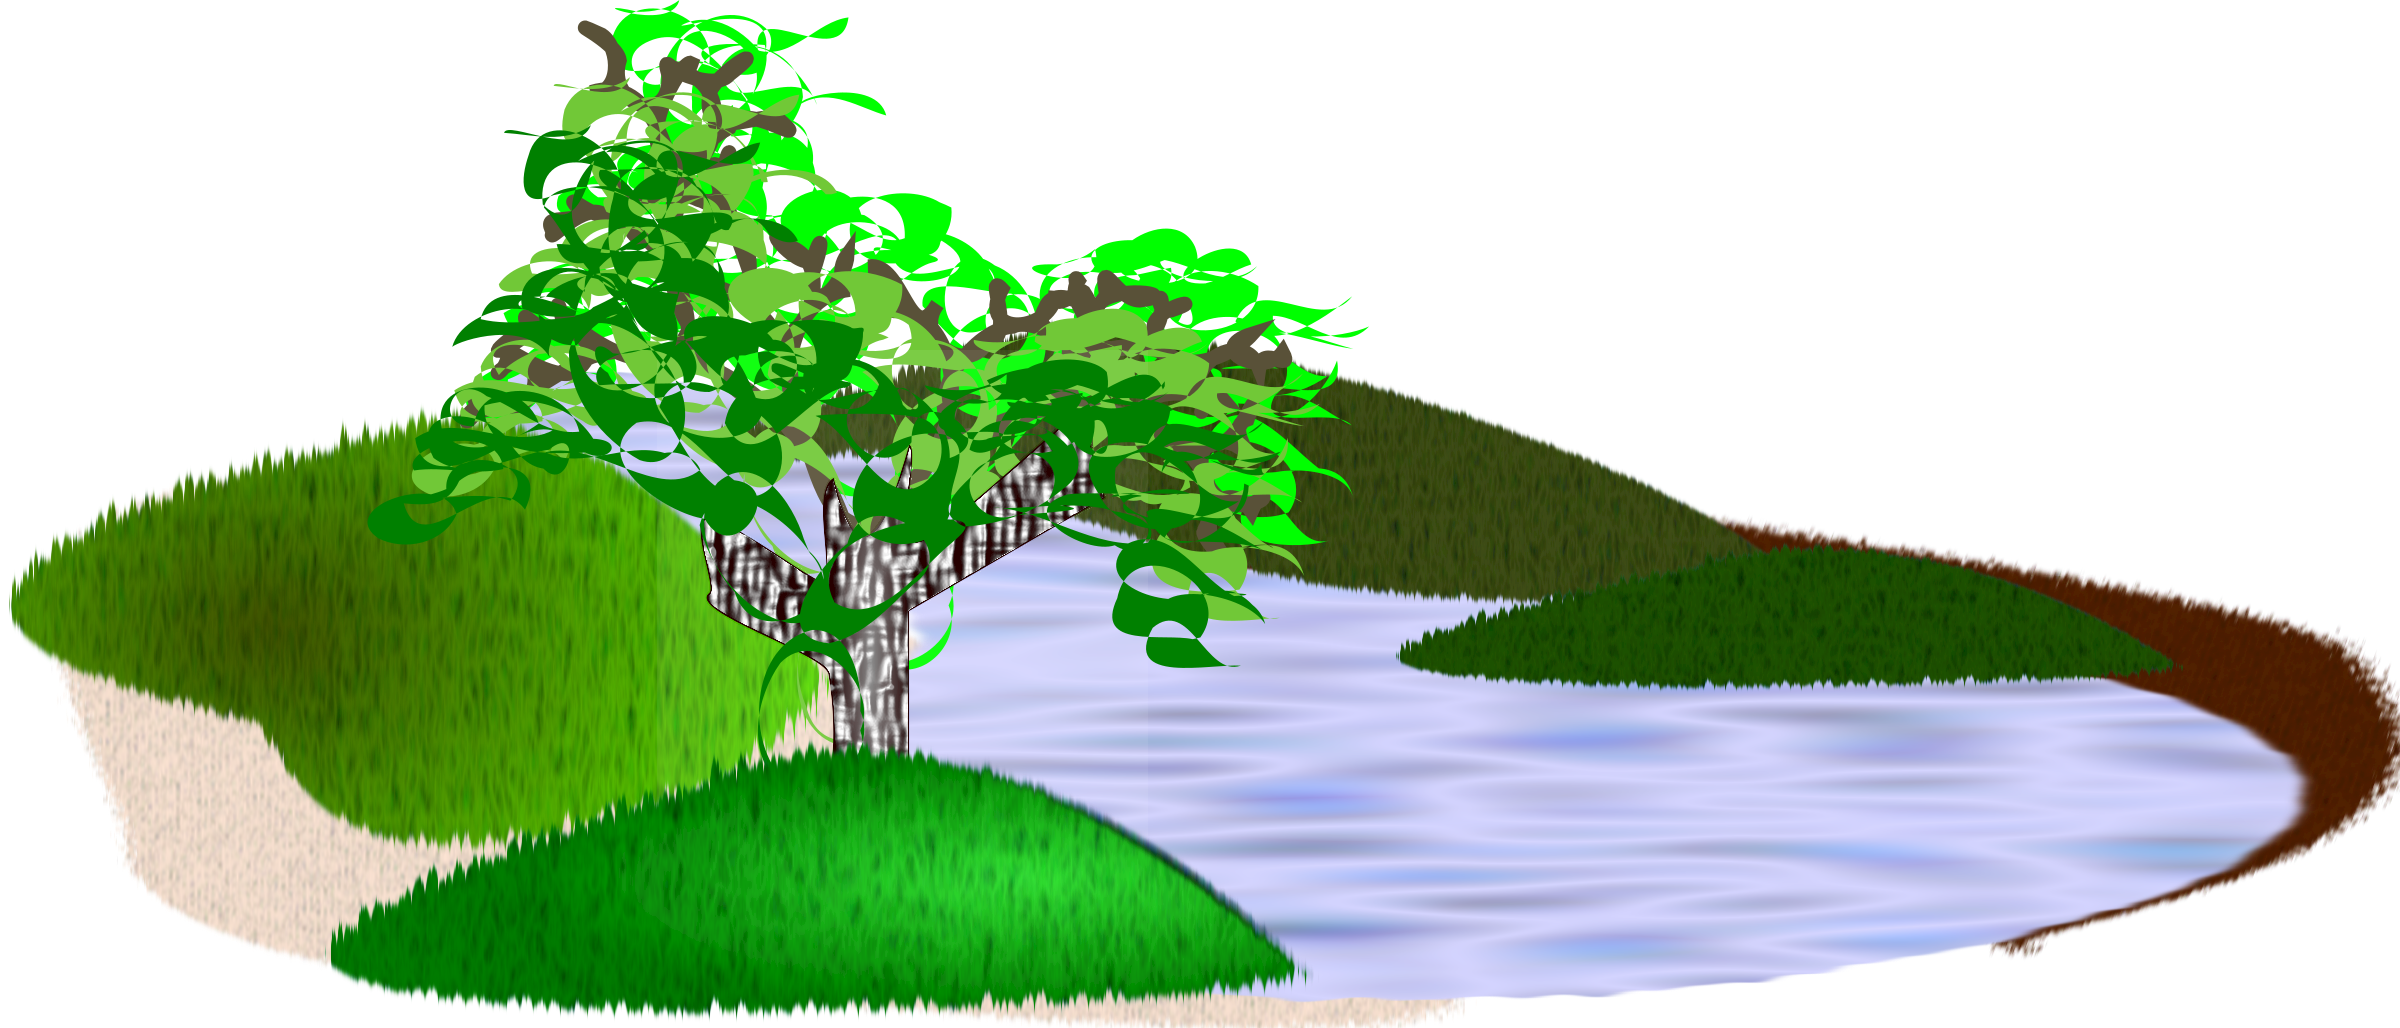 Water clipart scenery. Simple big image png